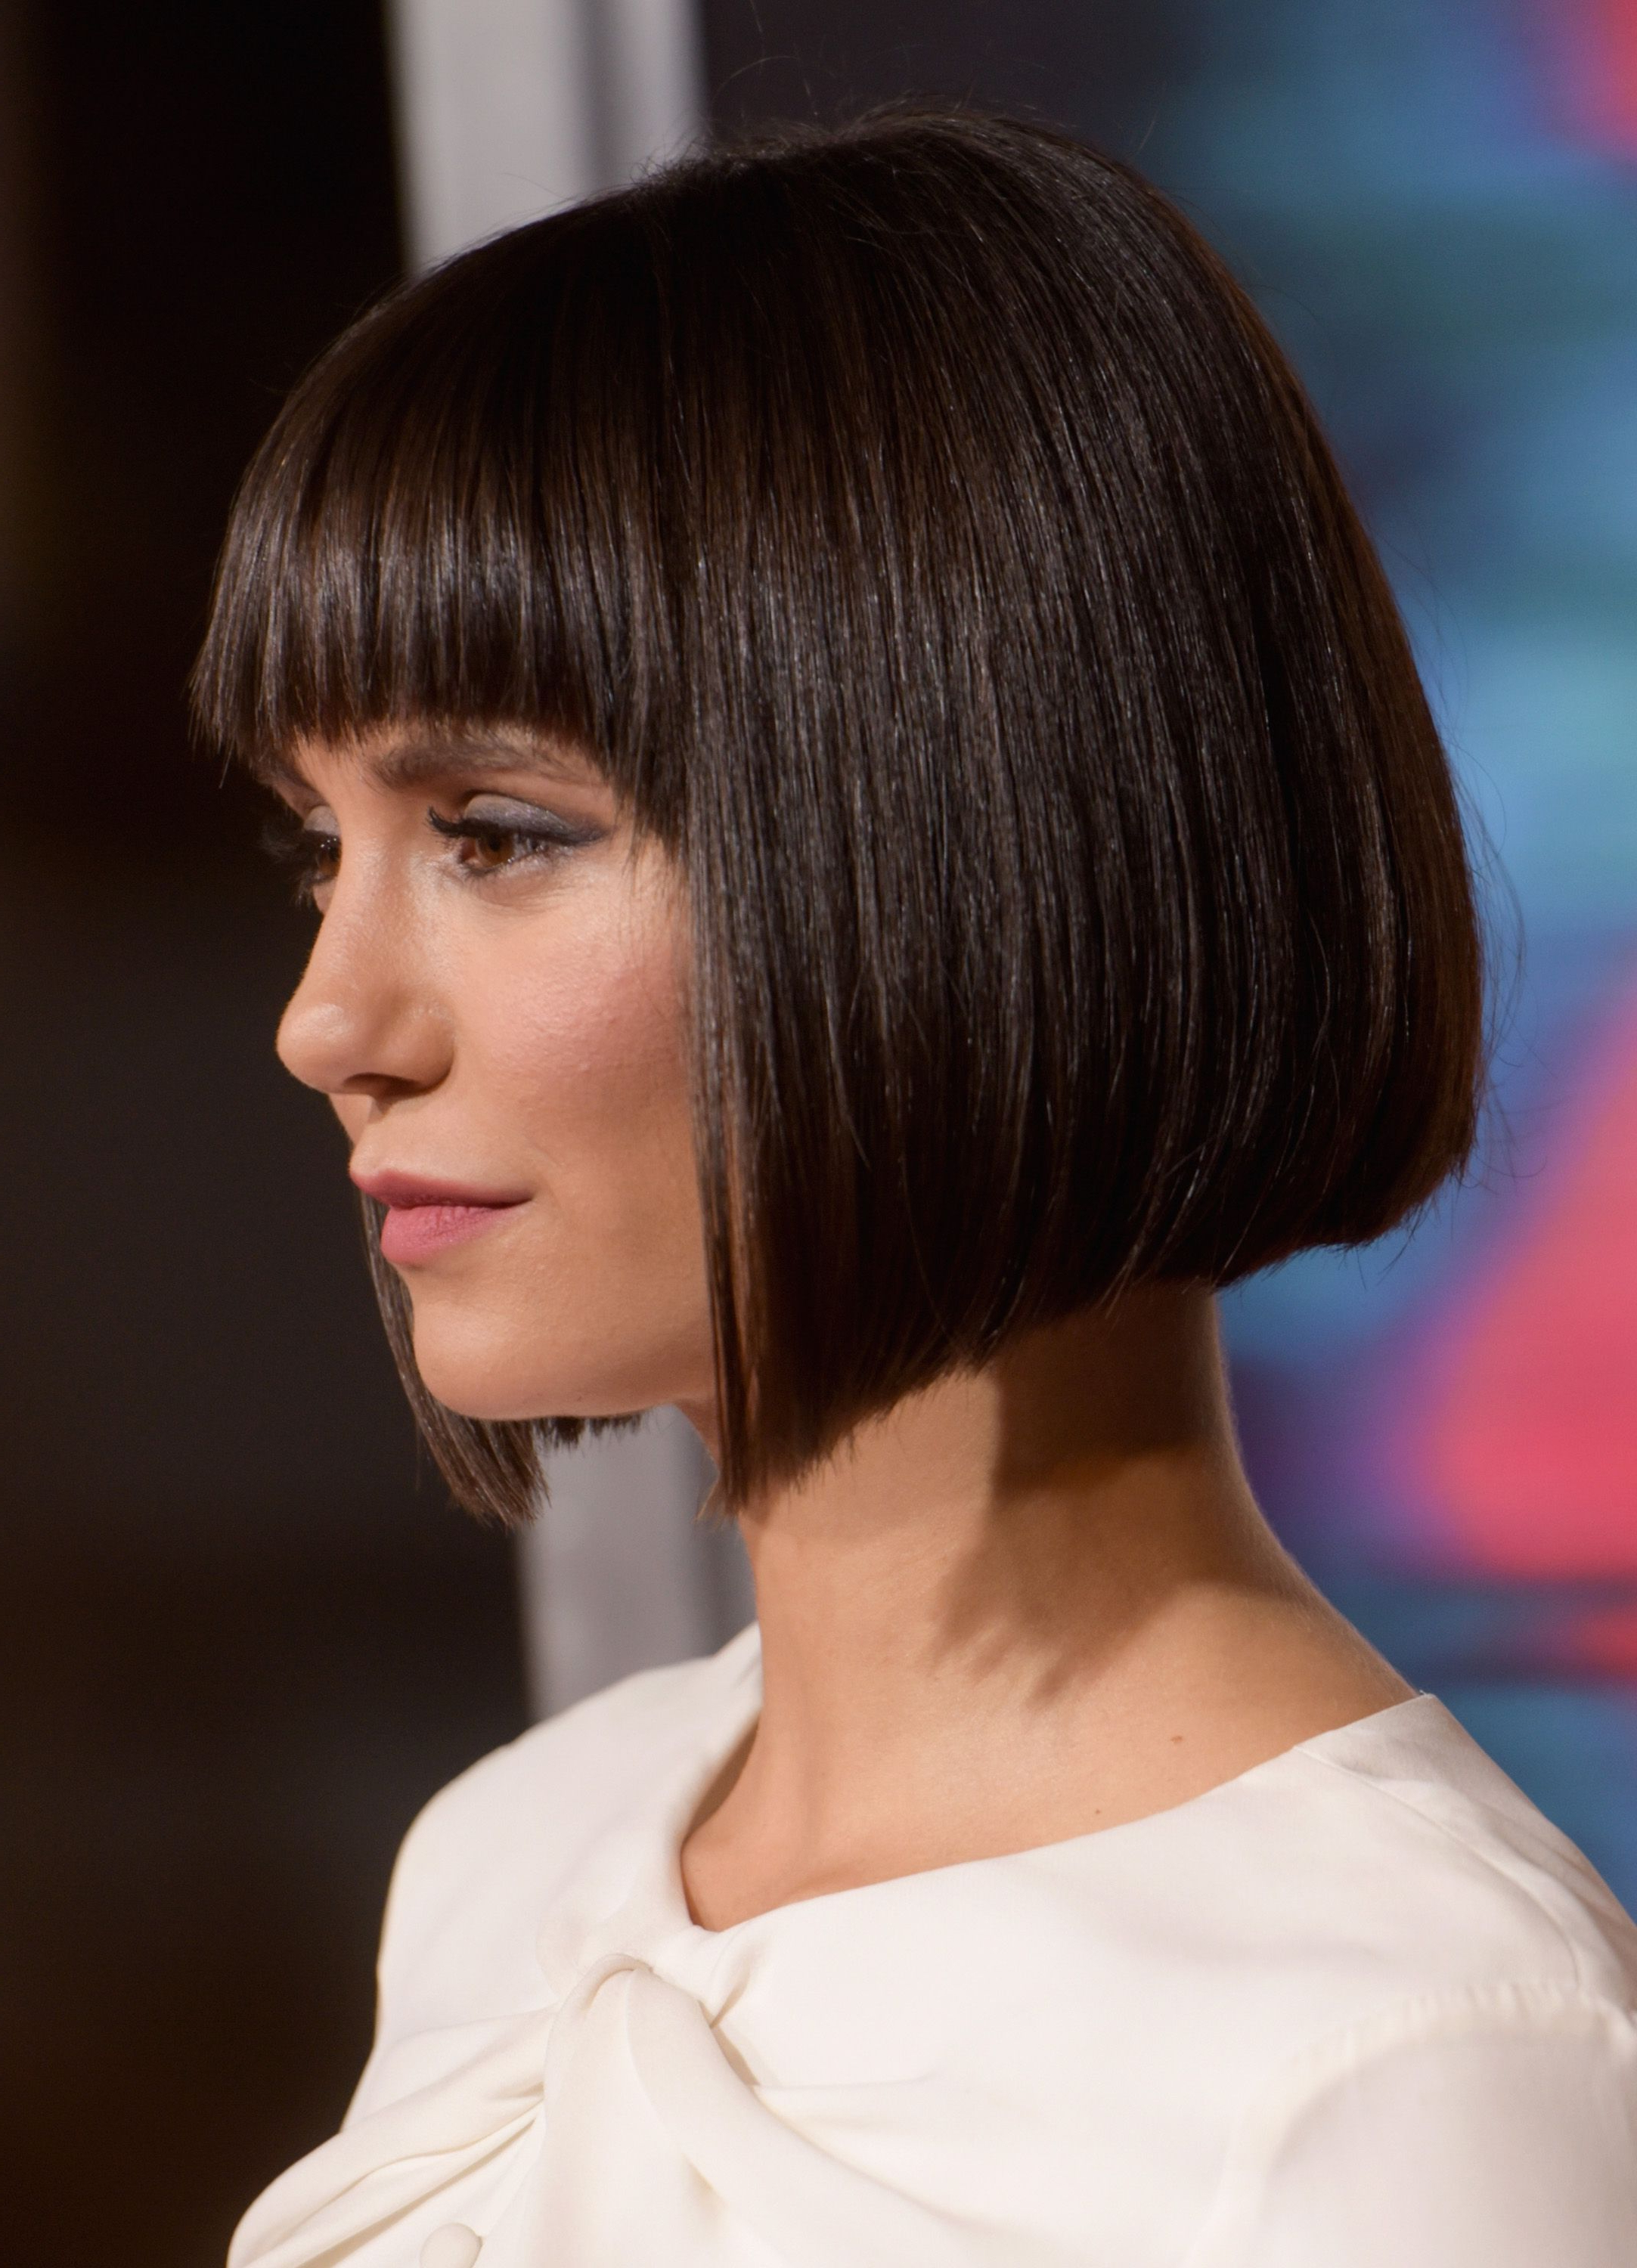 70 Best Bob Styles Of 2019 – Bob Haircuts & Hairstyles For Women With Trendy And Sleek Bob Haircuts (View 9 of 20)